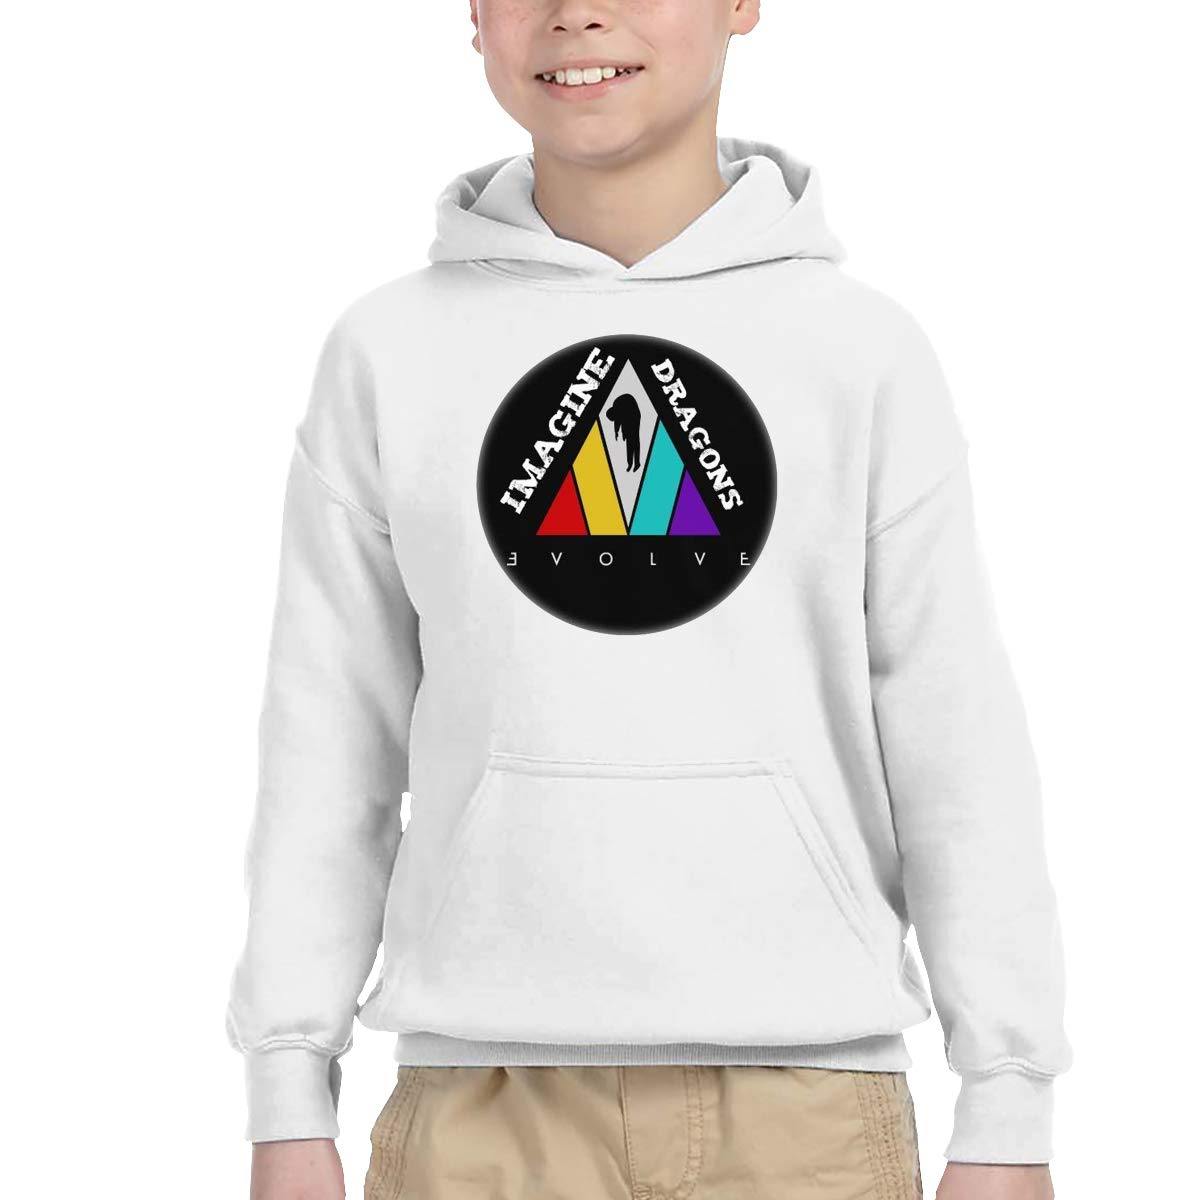 2-6 Year Old Childrens Hooded Pocket Sweater Classical Elegance and Originality Imagine Dragons Logo White